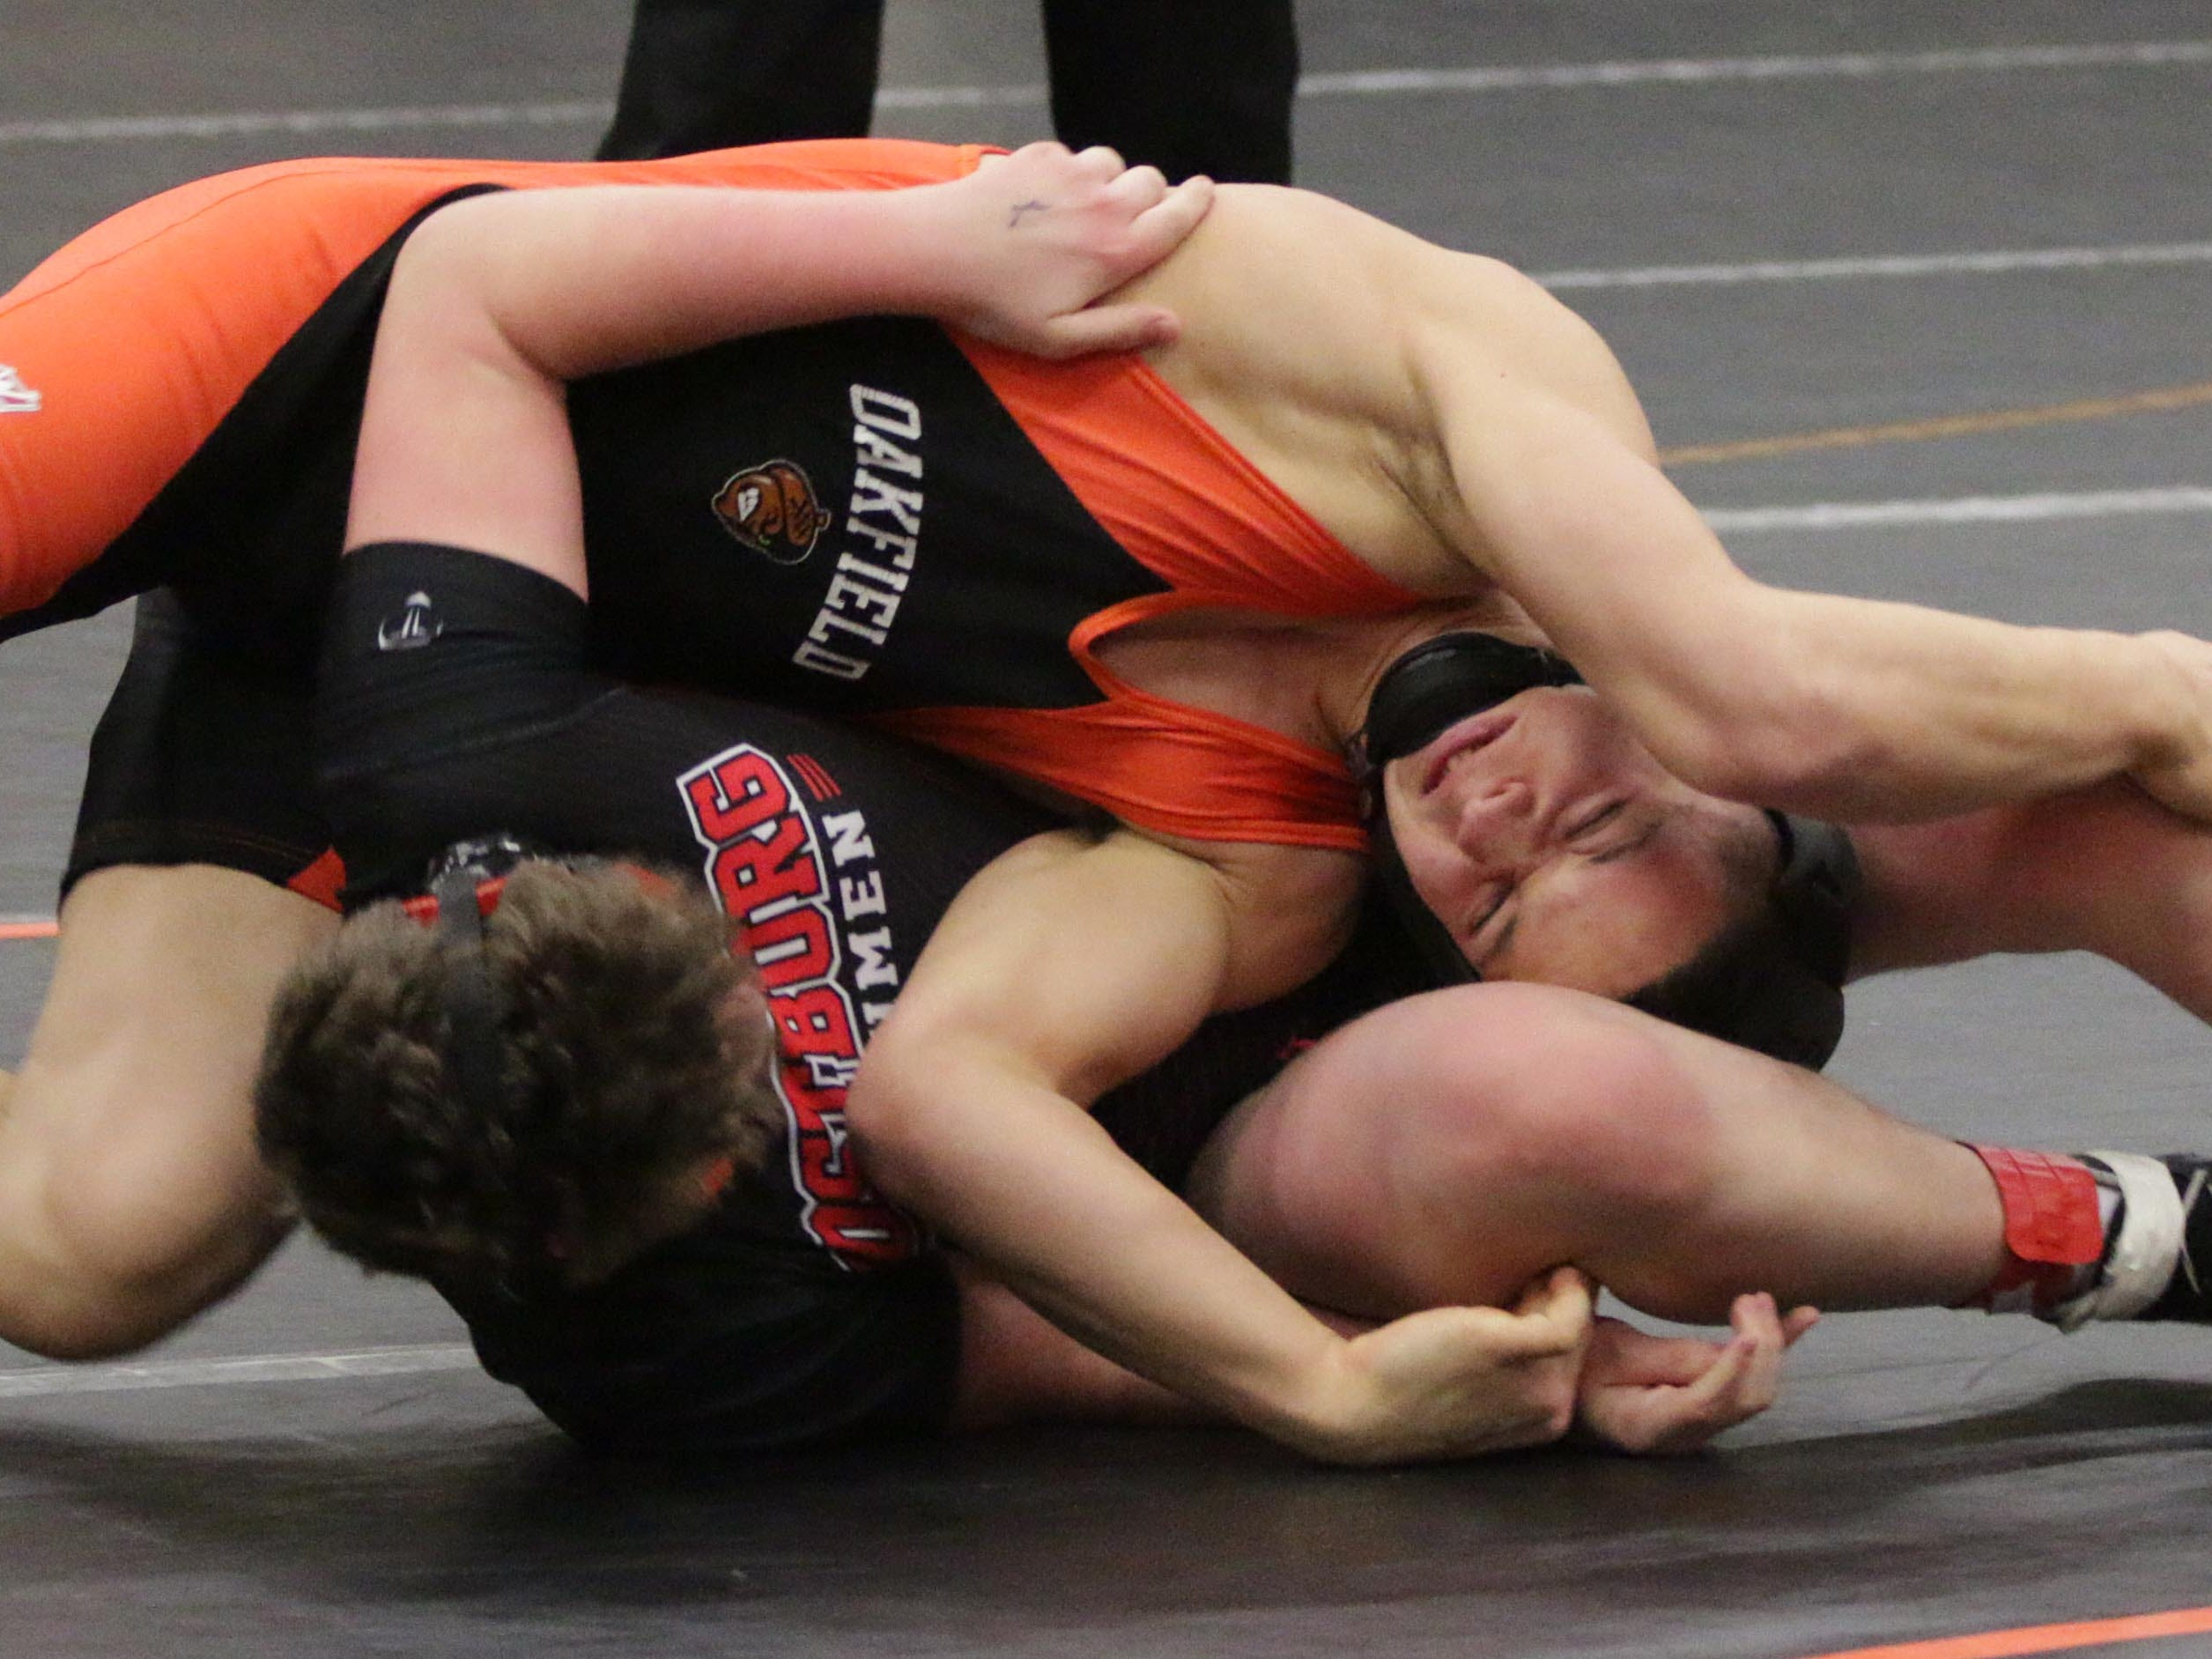 Oakfield's Brendan Hartwig, top, wrestles Oostburg's Mason Heinz in a 170-pound match at the WIAA Div. 3 Wrestling Regional, Saturday, February 9, 2019, in Oakfield, Wis. 